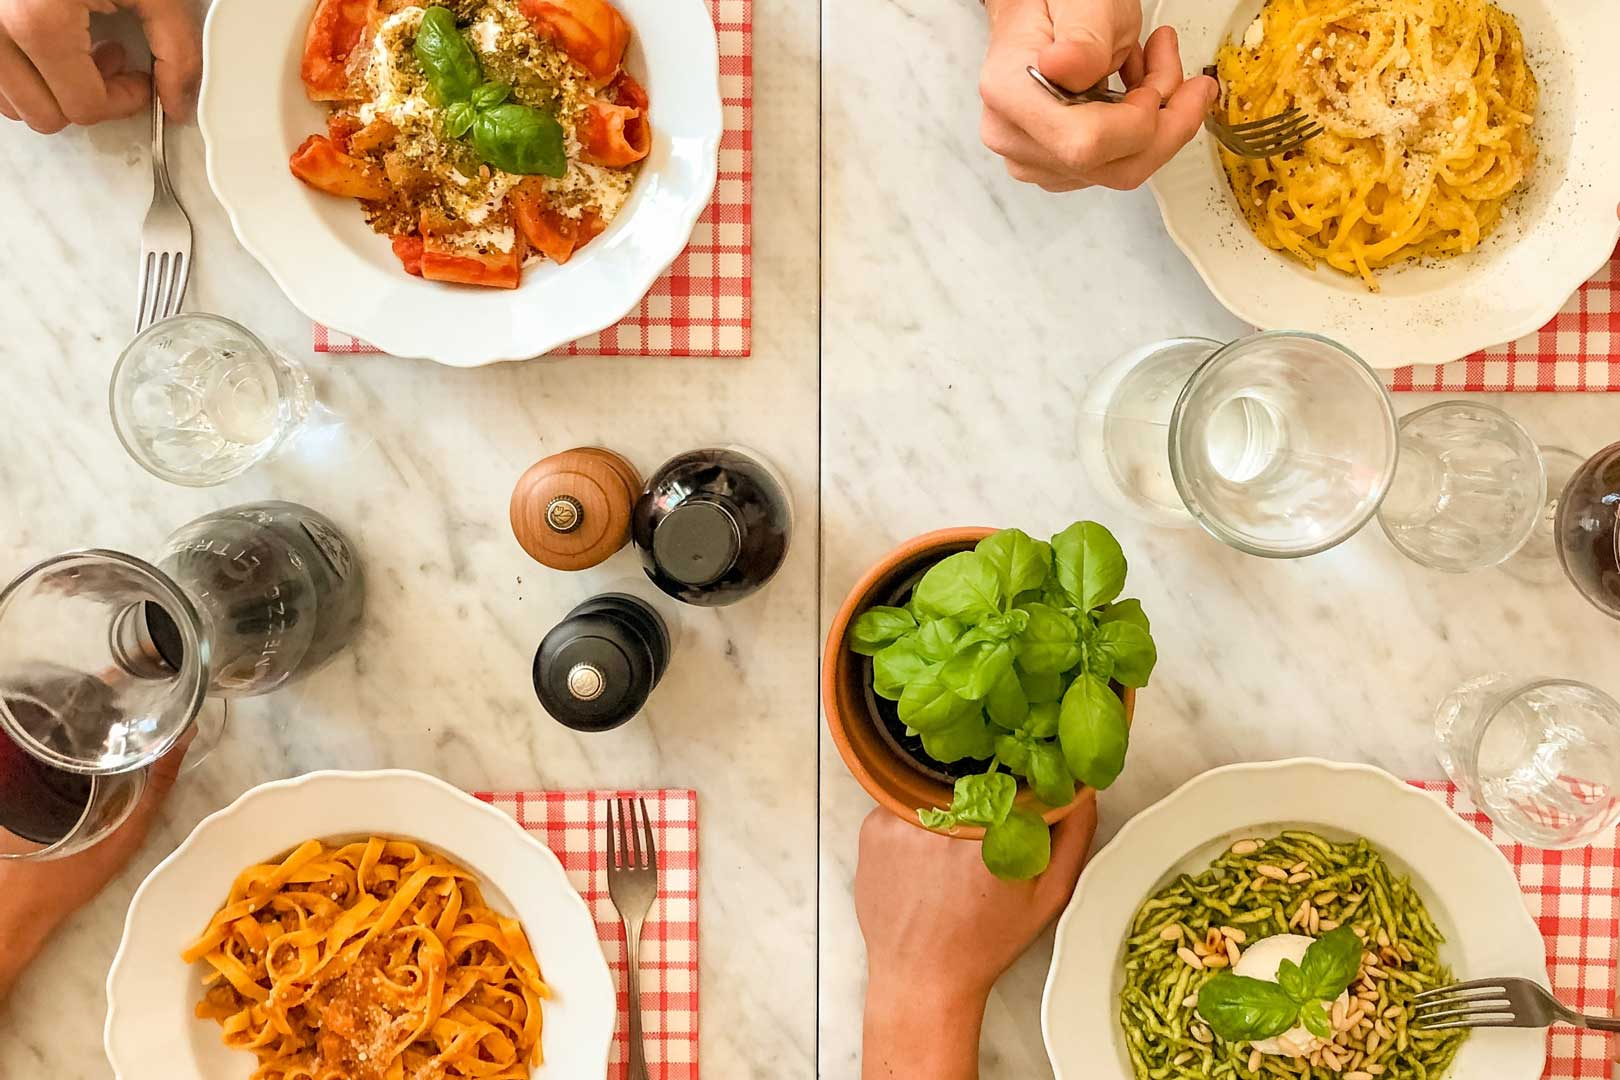 Un party a suon di carbs per il quarto Miscusi - Milano